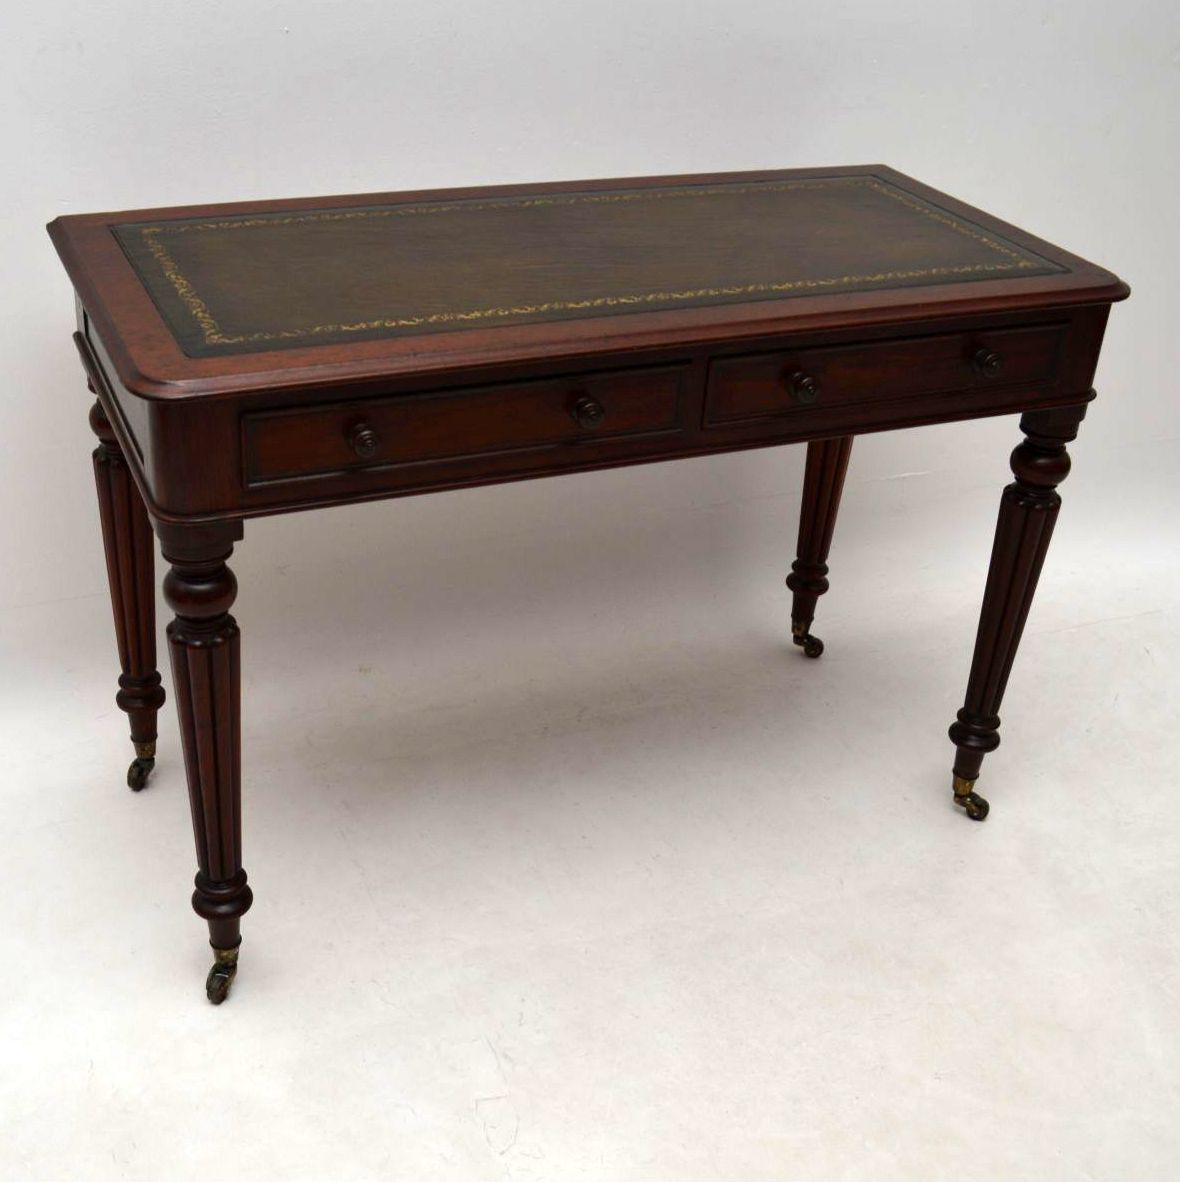 Antique Victorian Mahogany Leather Top Writing Table Desk. Locking Computer Desk. Josephine Desk World Market. Rattan Desk Chair. Queen Bed Frame With Drawers And Headboard. Real Wood Coffee Table. Kitchen Pull Out Drawers. Arranging Desks In A Classroom. Round Dinner Table For 6